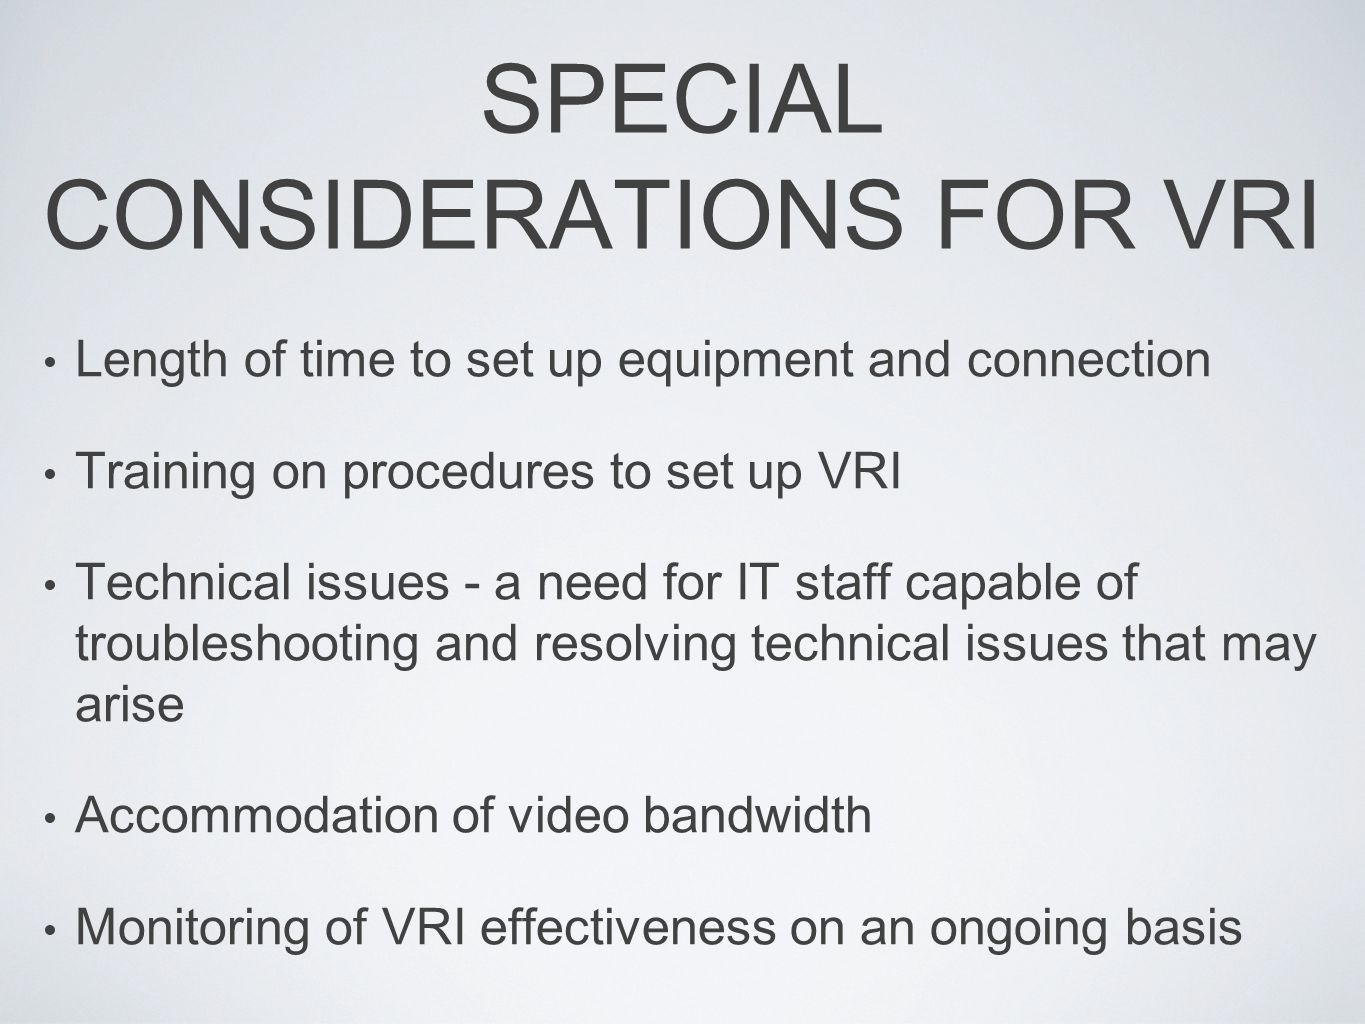 SPECIAL CONSIDERATIONS FOR VRI